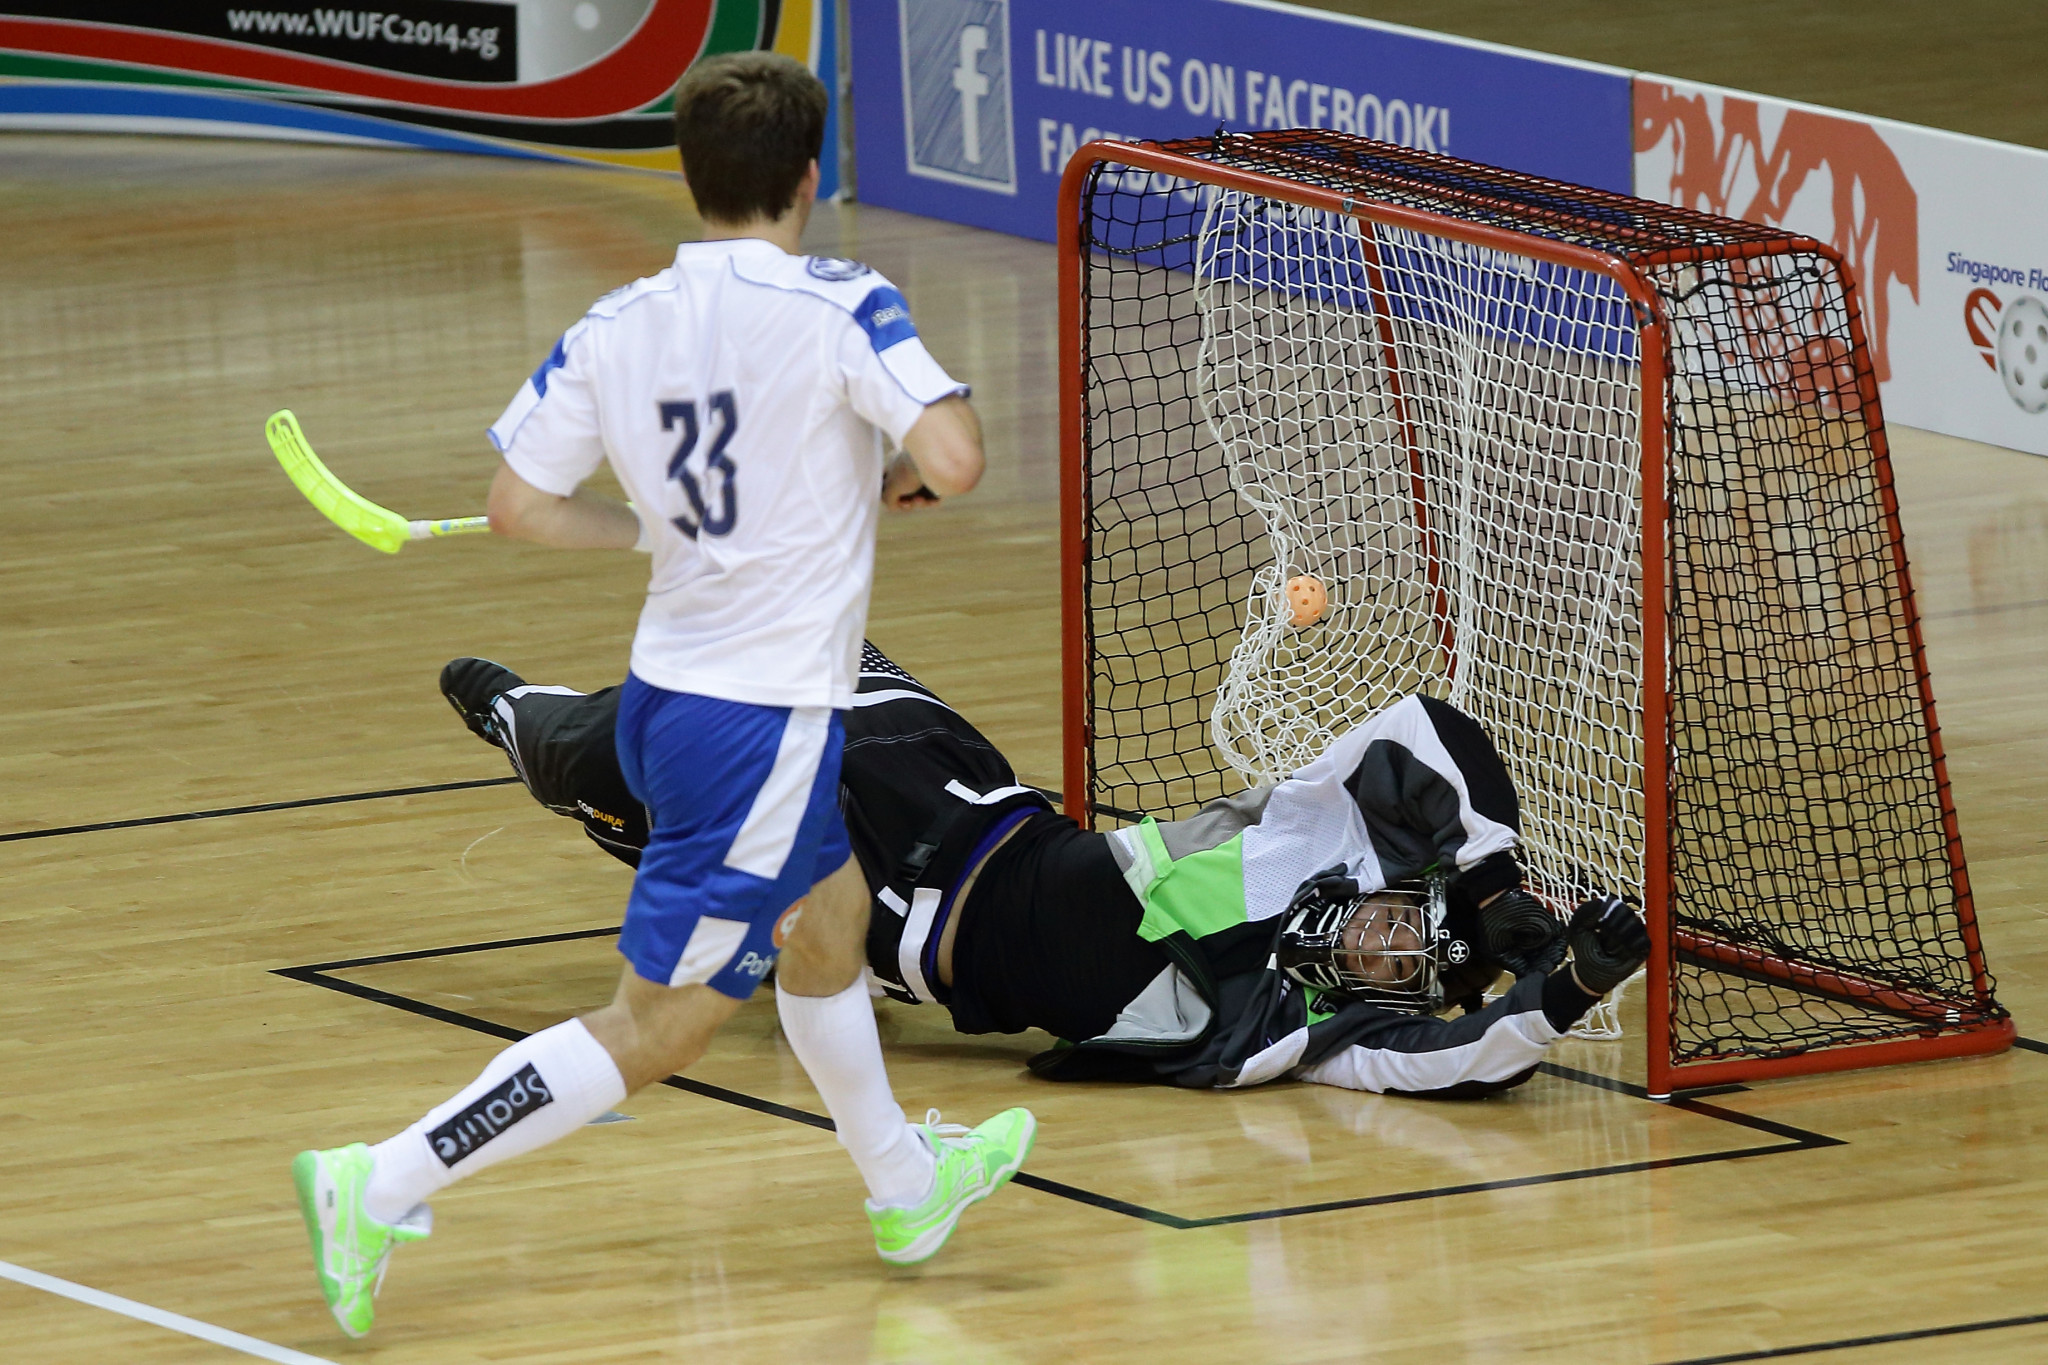 IFF secretary general hopes World Games will boost floorball in United States